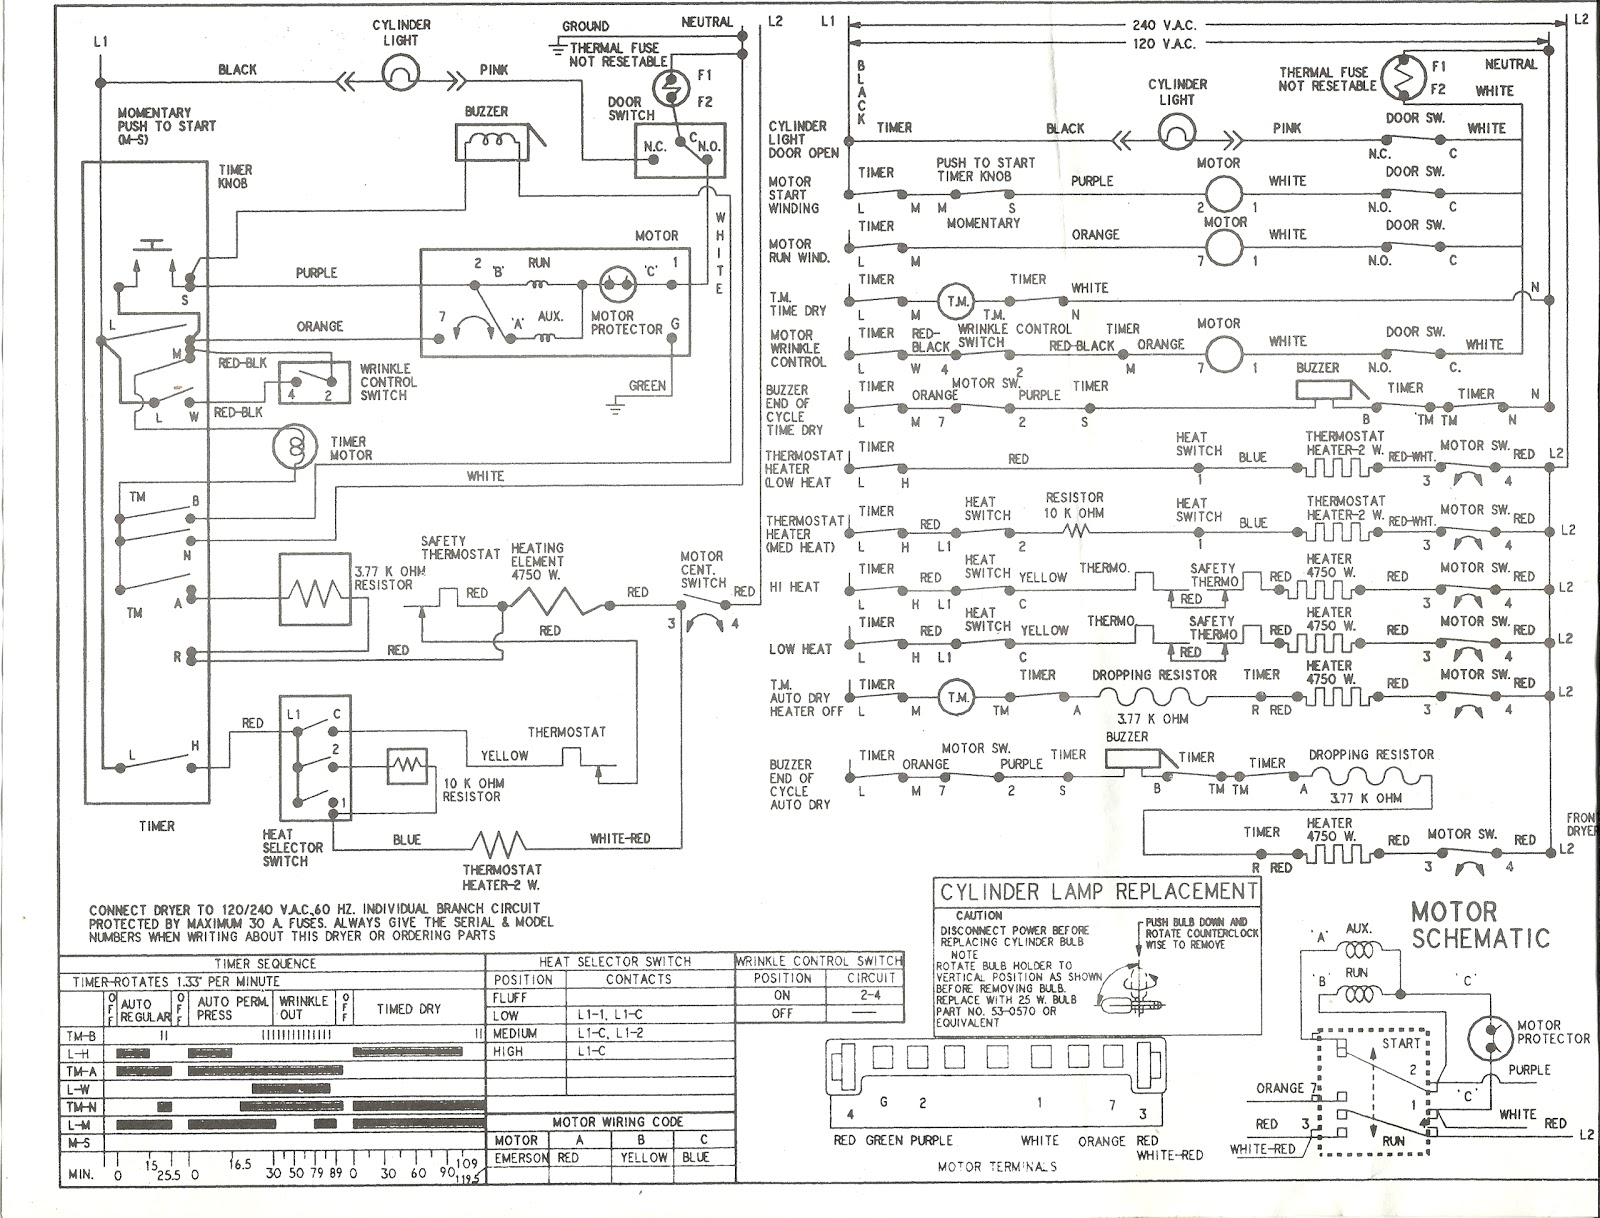 dryer wiring schematic schema wiring diagram rh 4 vbfe raphaela knipp de wiring diagram for dryer heating element wiring diagram for dryer receptacle